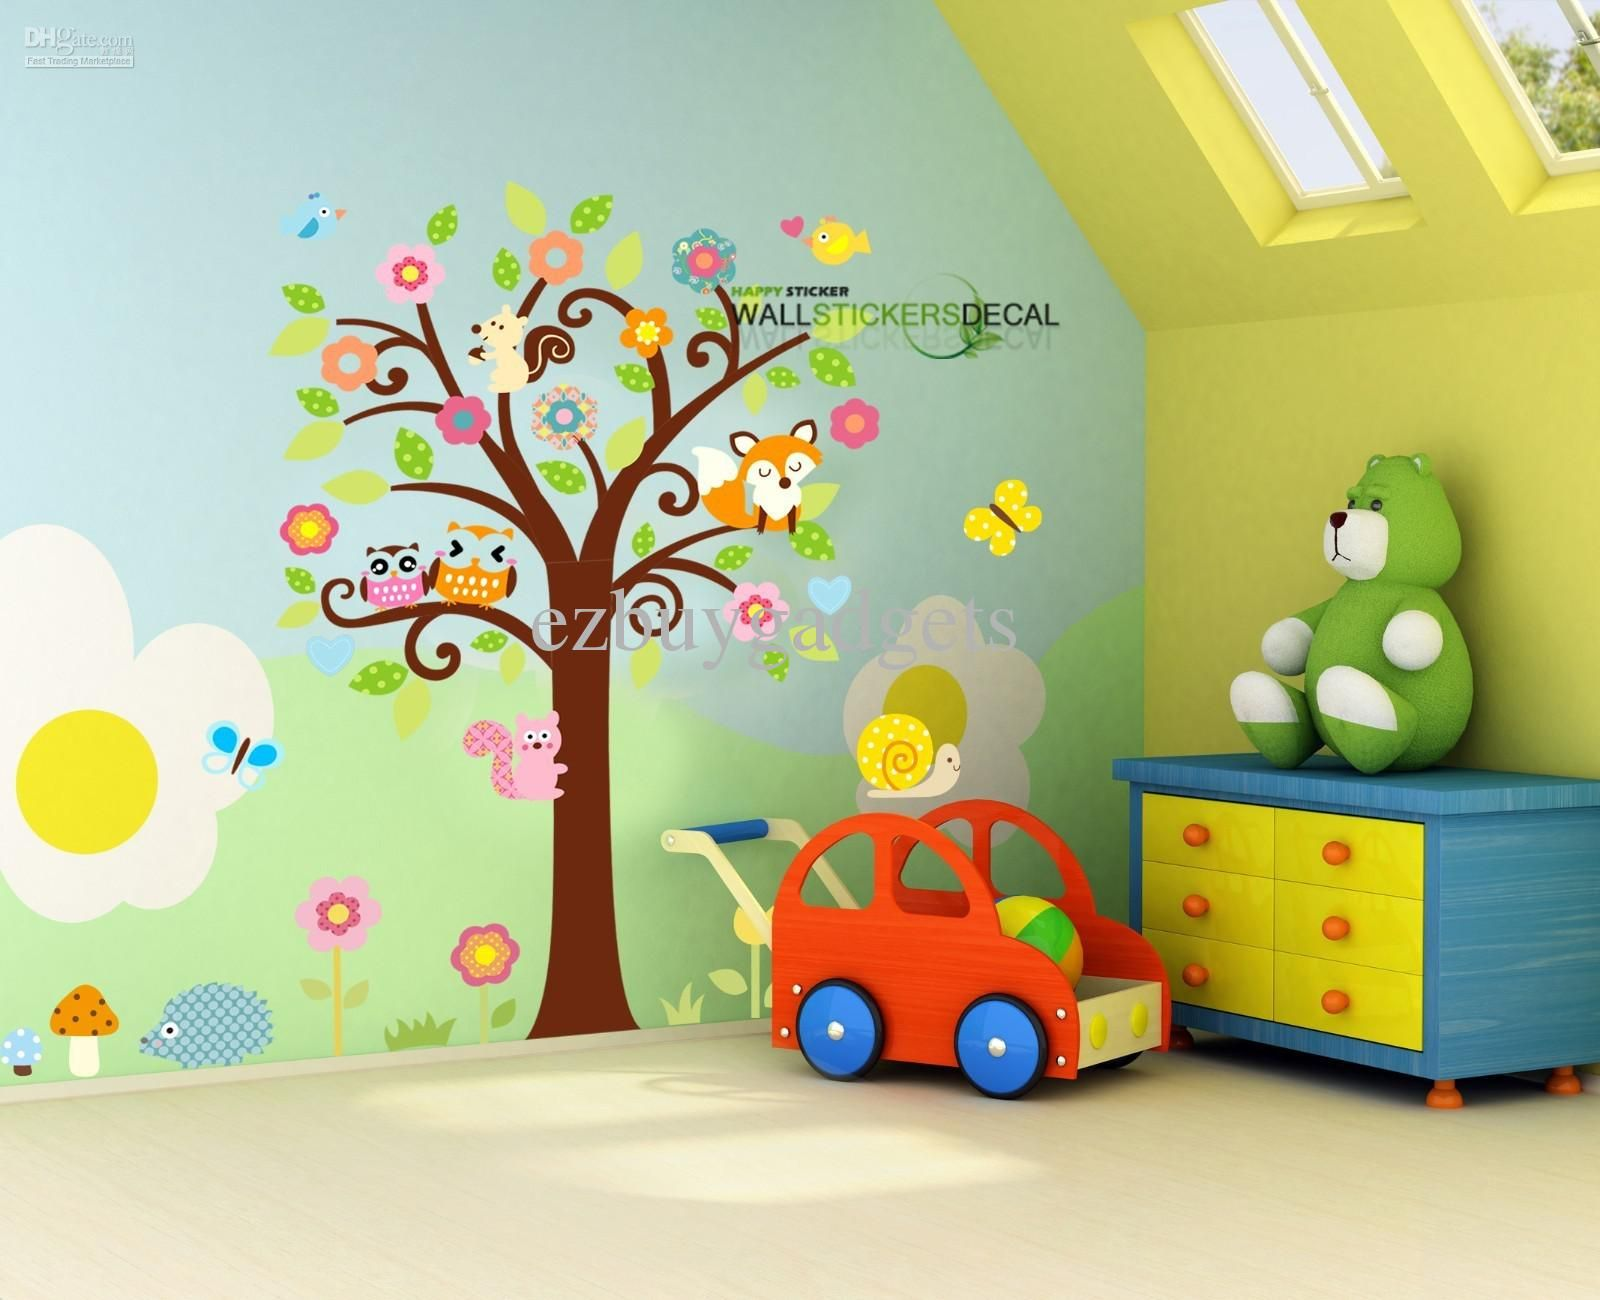 Baby boy room decor stickers - Cheap Giant Nursery Wall Decal Scroll Tree Owl Jungle Animal Wall Sticker Kids Room Baby Girls Dorm Decor From Dropshipper Ezbuygadgets Buy Wall Decals For